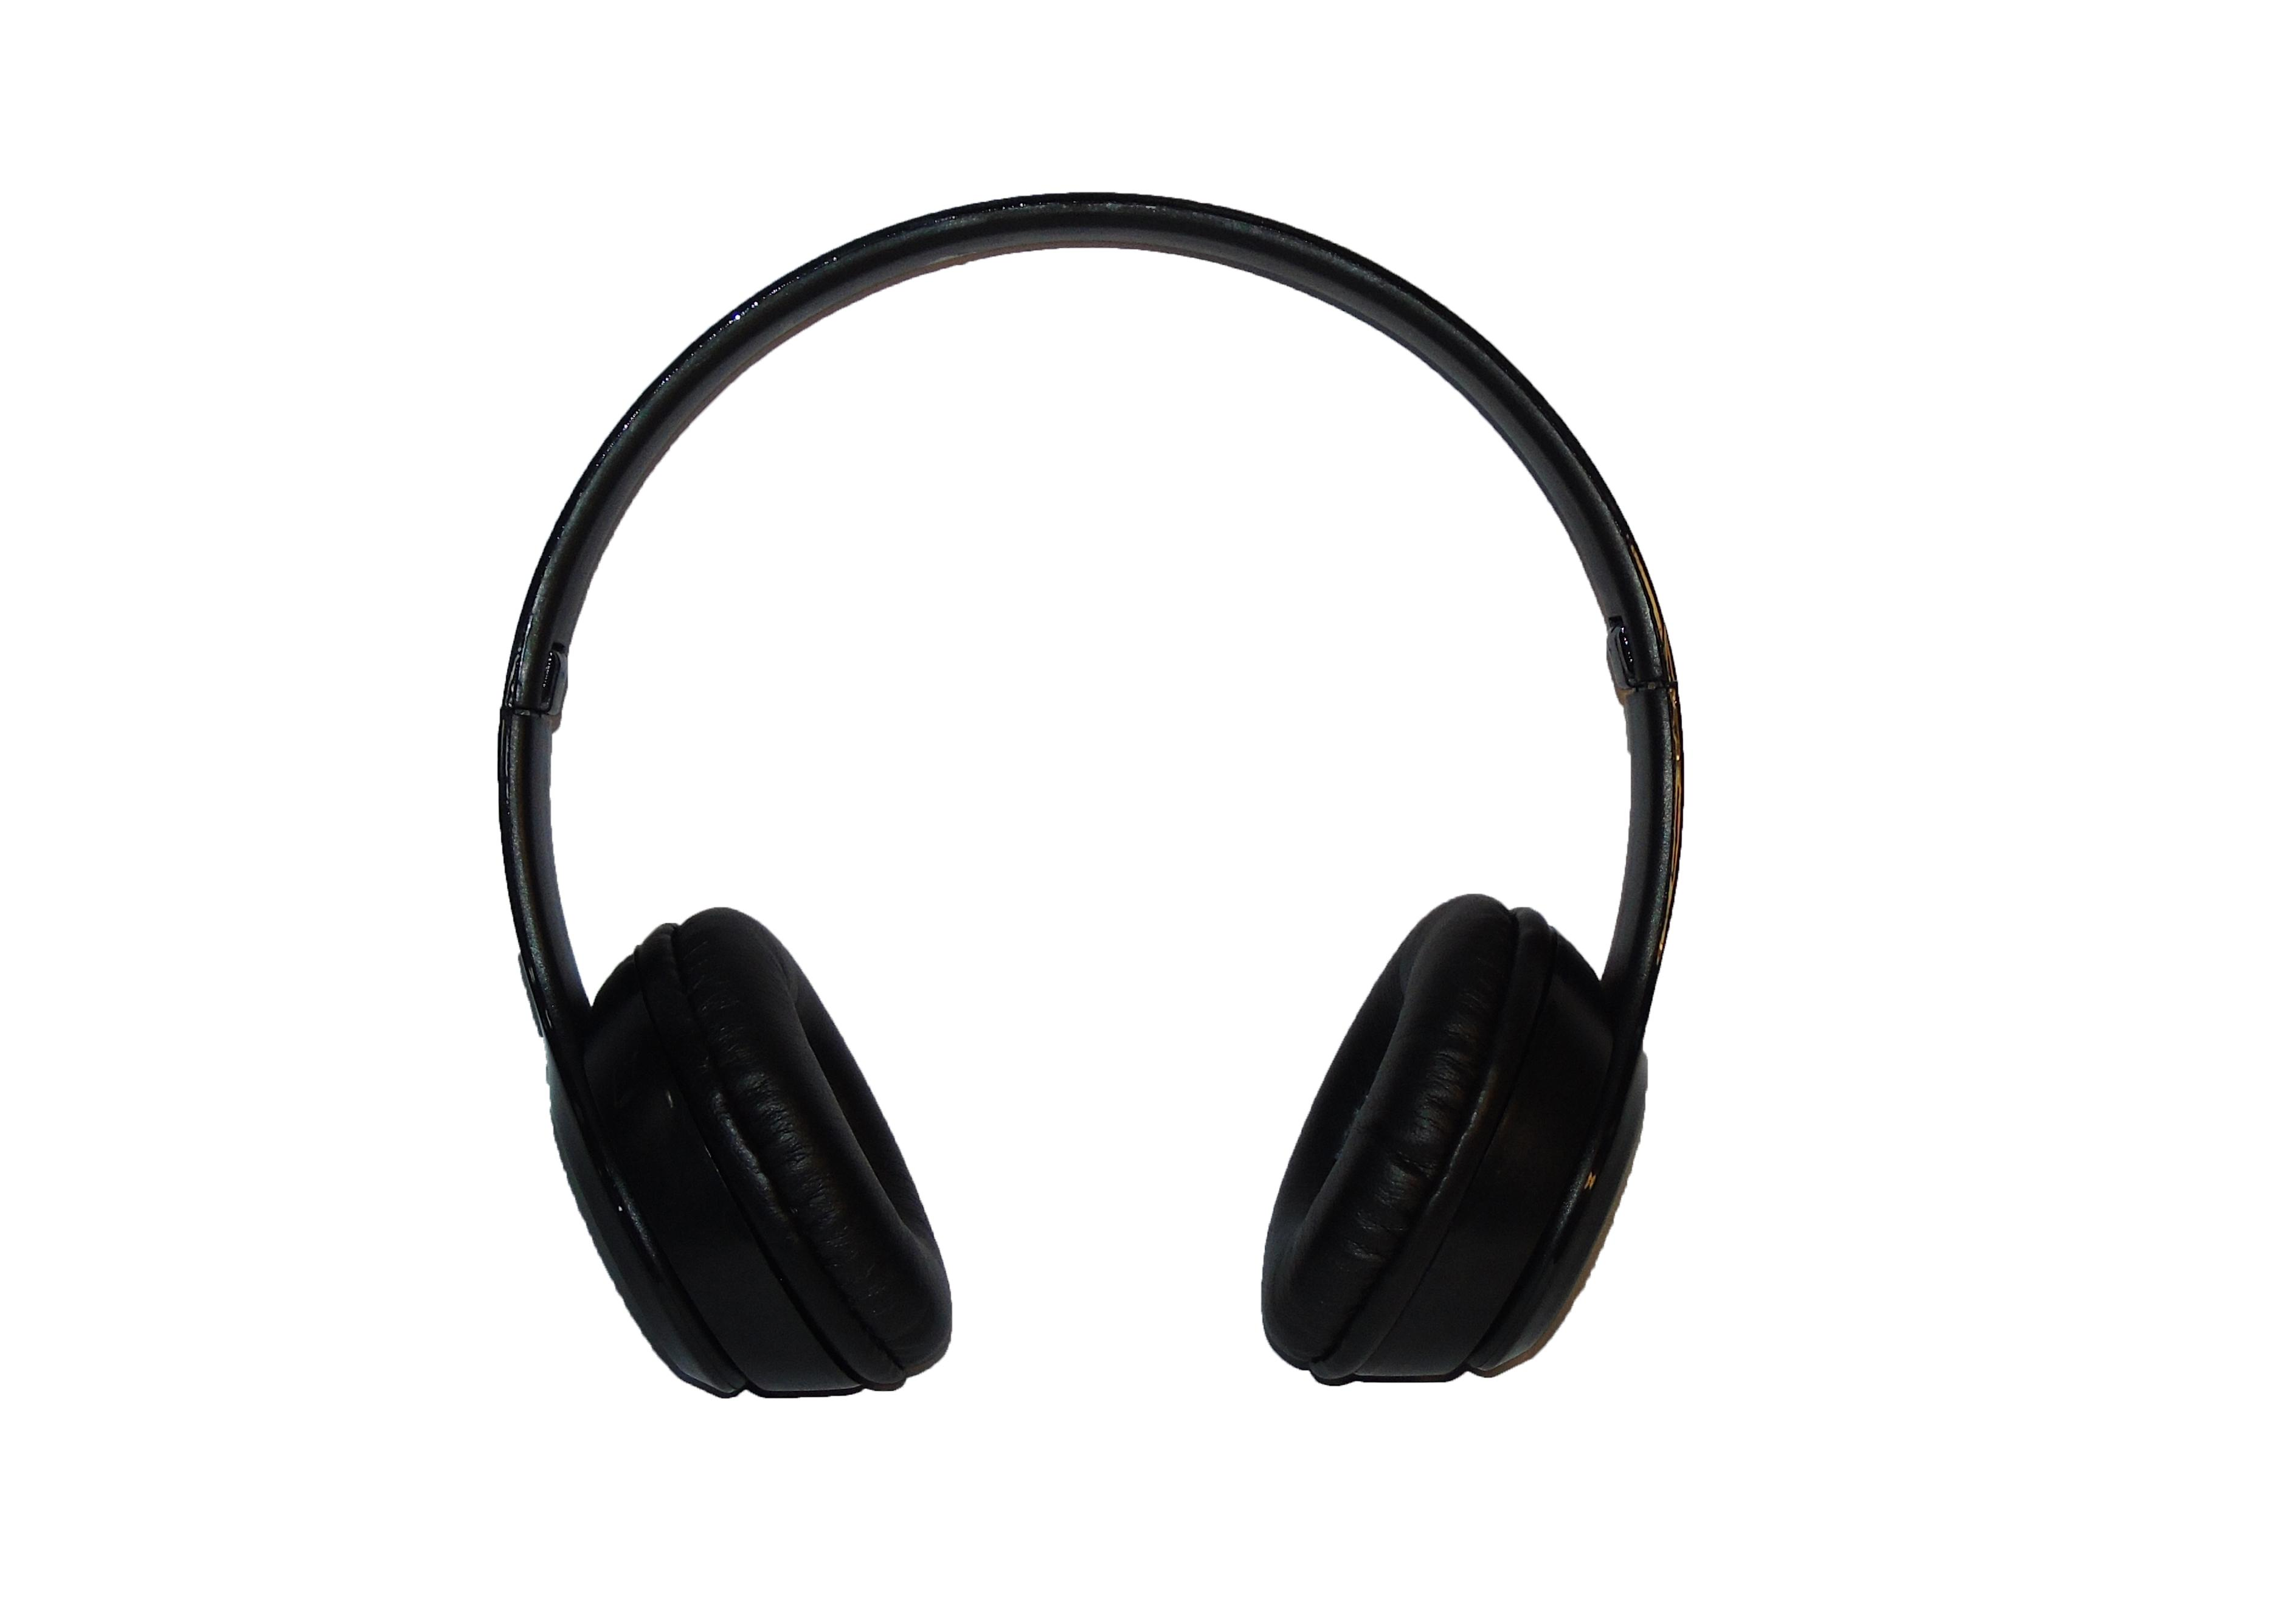 a3b55fc7342 Beats Solo 2 Designed for Sound Tuned for Emotion Headphones by dr.dre